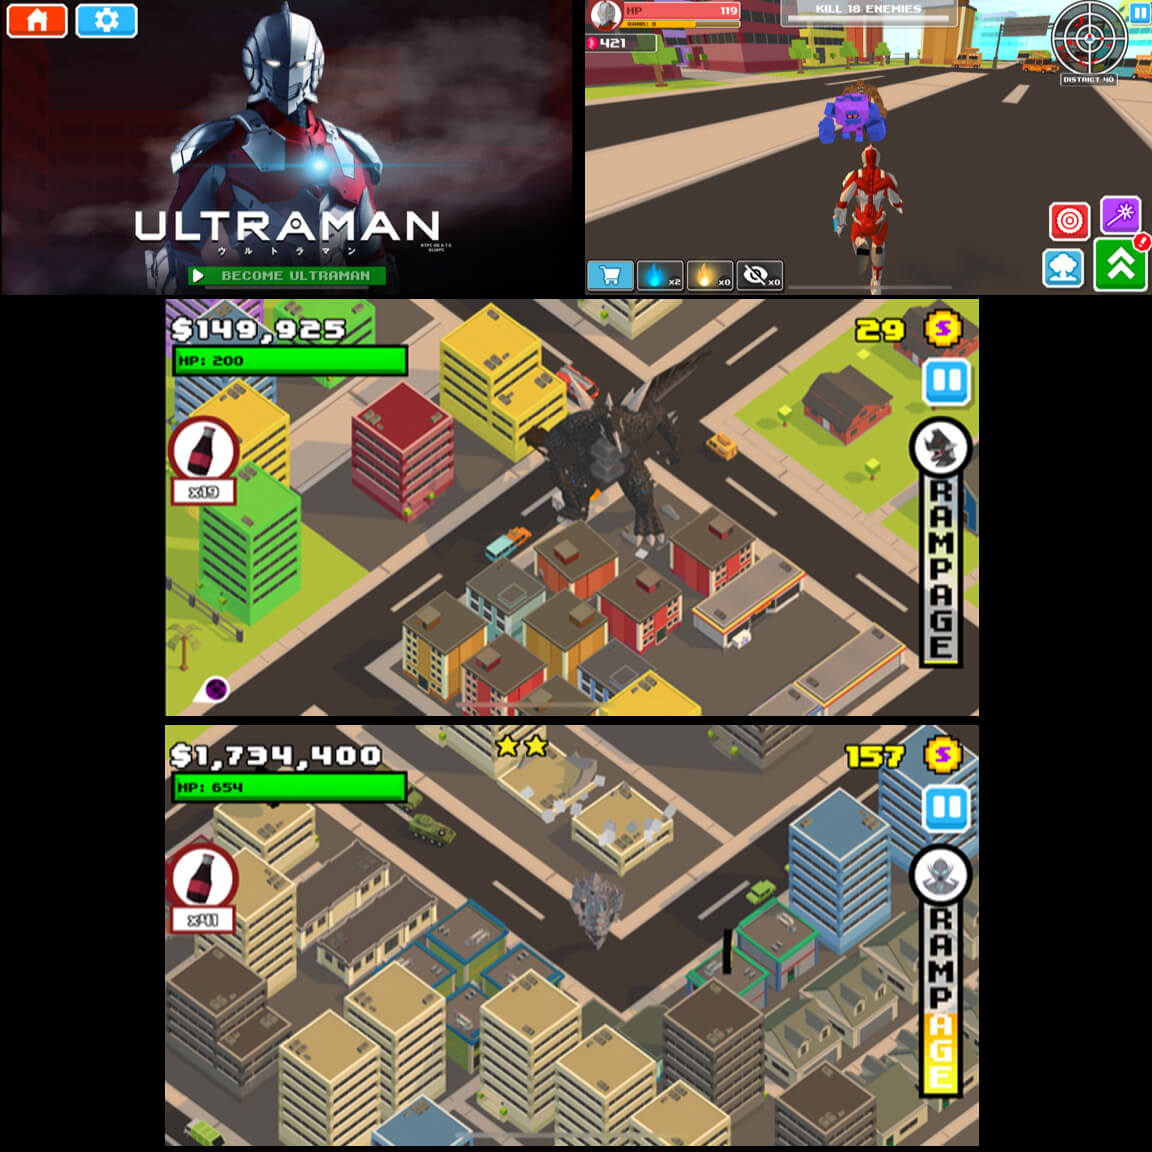 ACEVIRAL JOINS THE ULTRAMAN LICENSING PROGRAM  WITH ITS NEWEST GAME UPDATE, SMASHY CITY: ULTRAMAN!